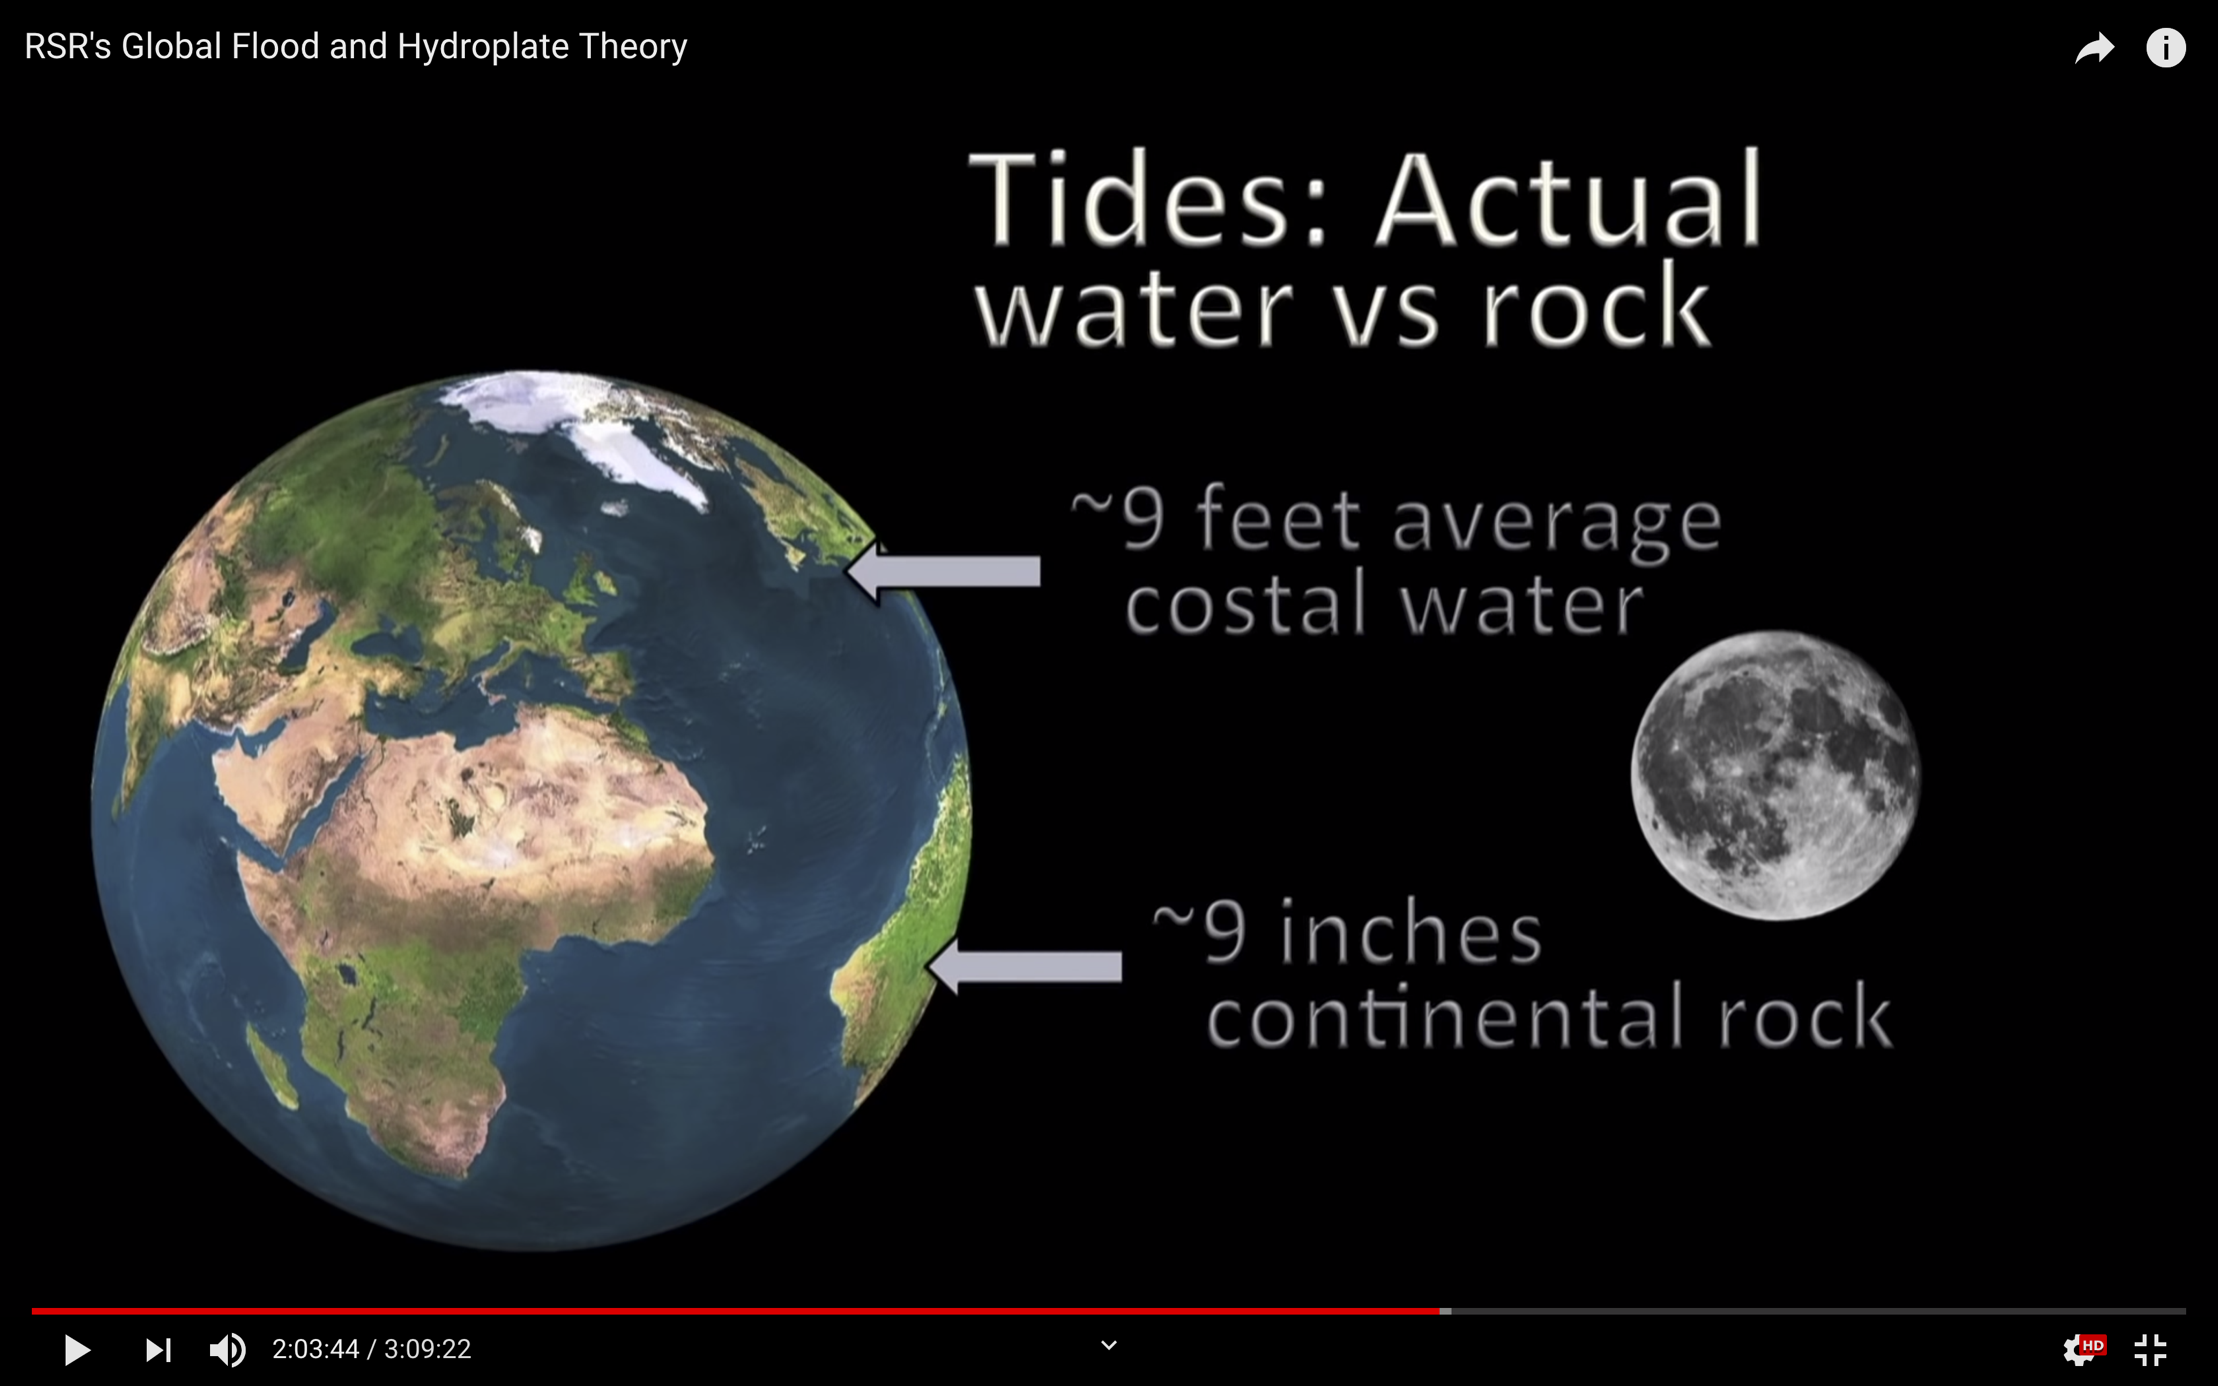 Screenshot from RSR's Hydroplate video showing the average 9-ft ocean tides vs the average 9-in land tides